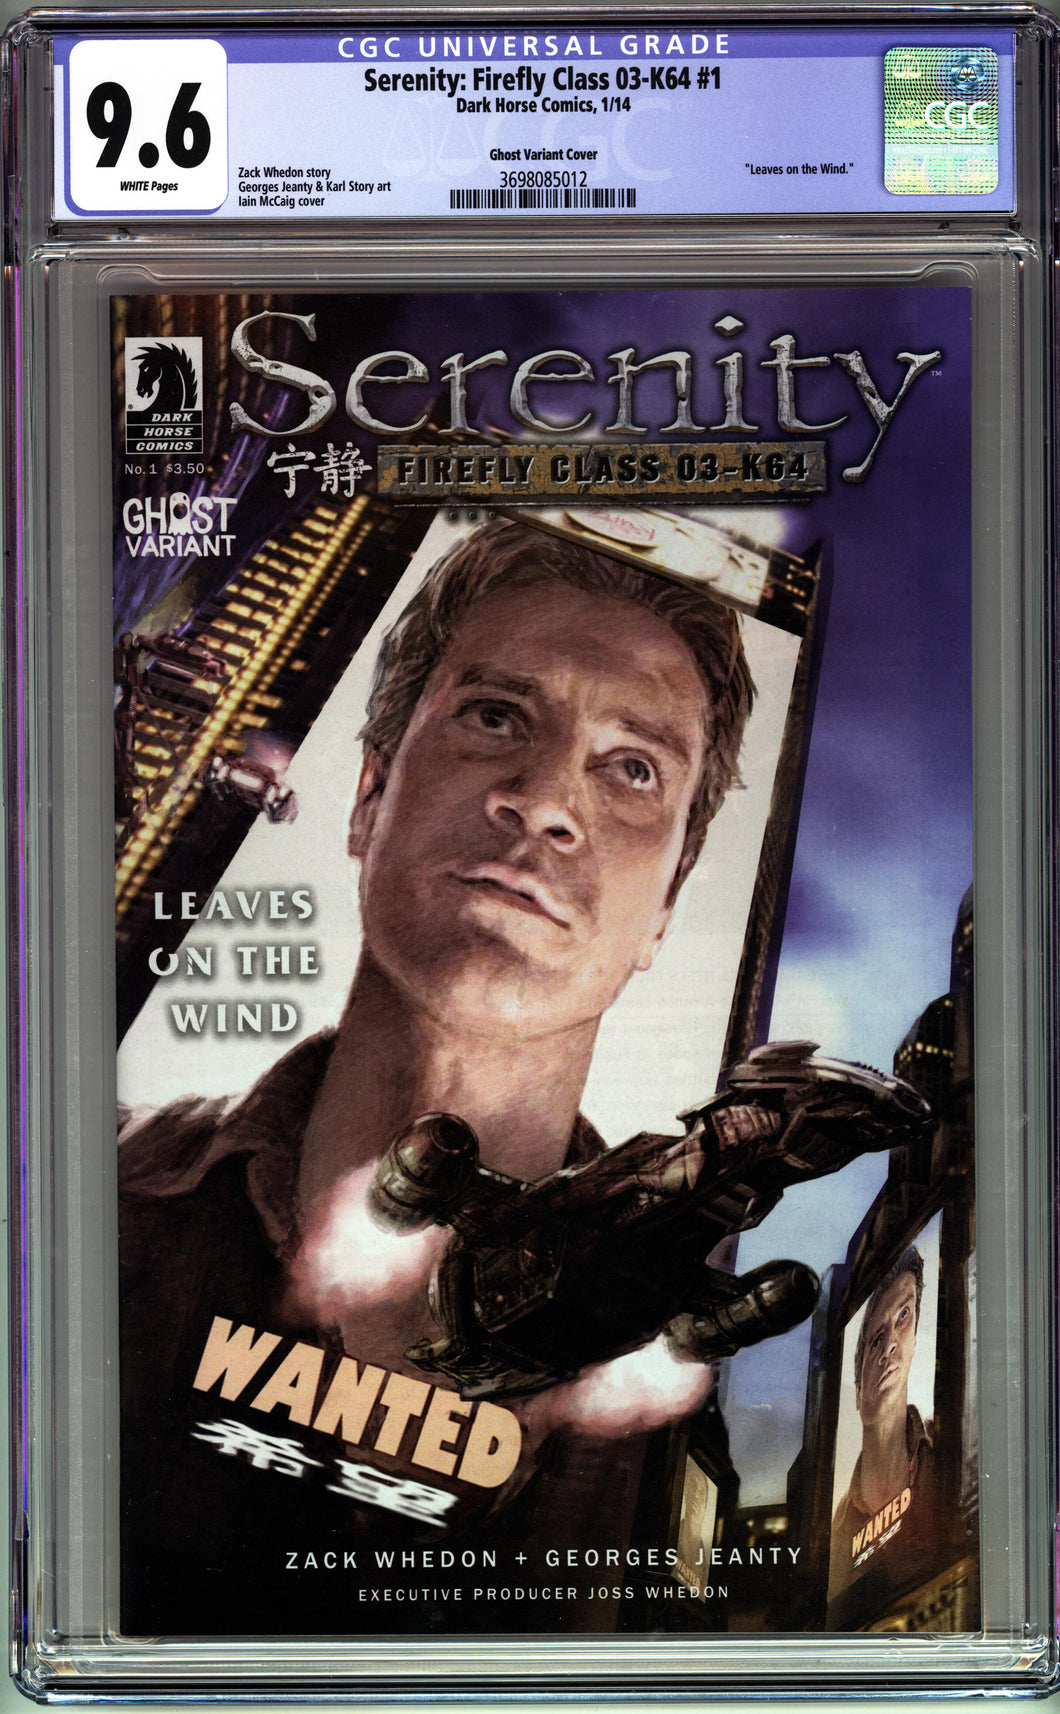 SERENITY FIREFLY CLASS 03-K64 #1 (2014 DARK HORSE) CGC GRADED 9.6 NM+ Ghost Variant